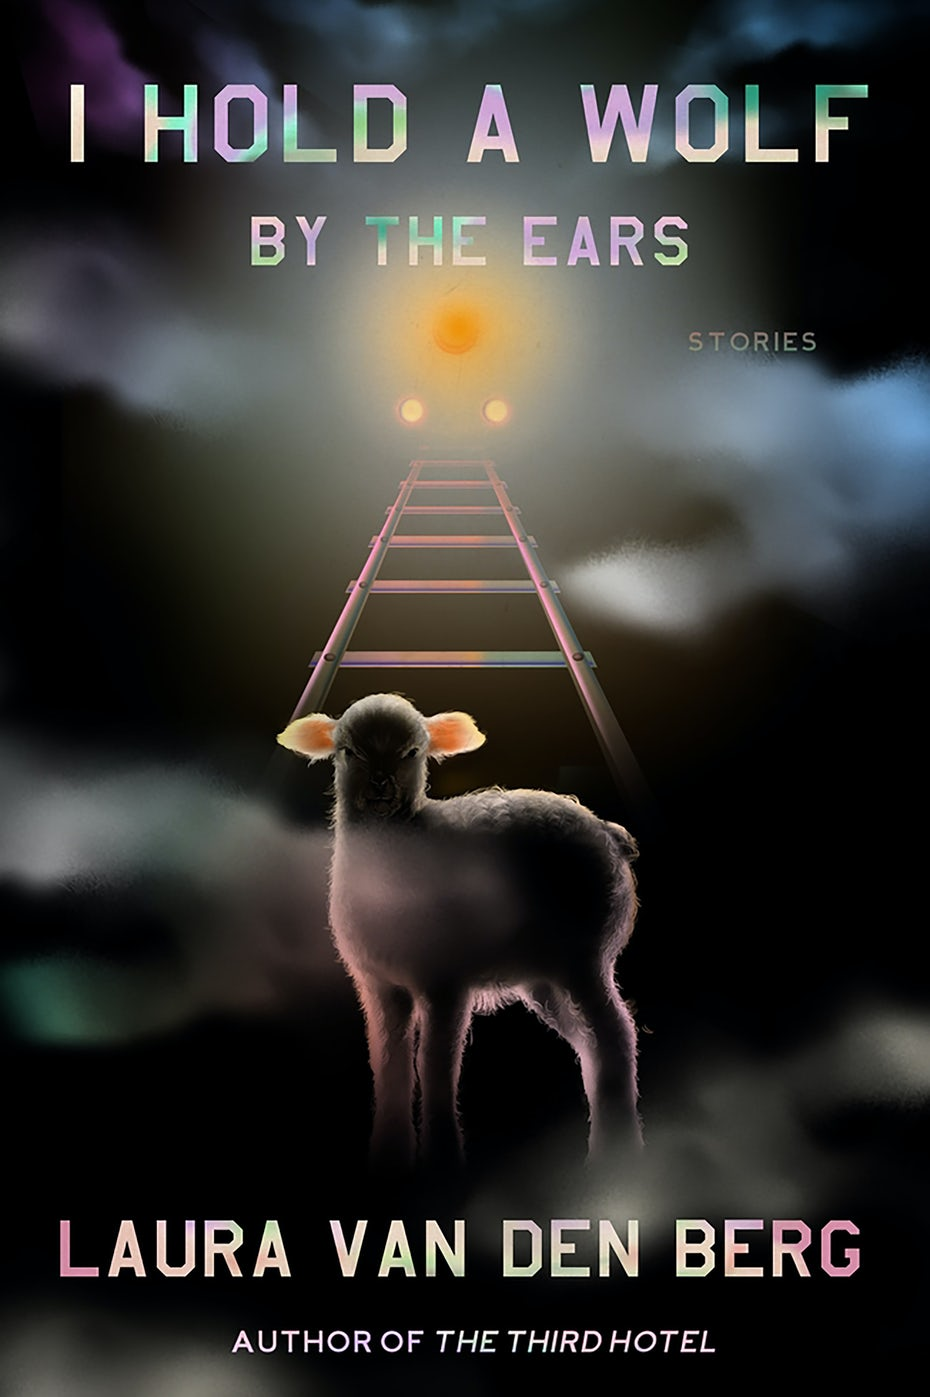 dark book cover with an image of a rainbow ladder and a lamb at its base